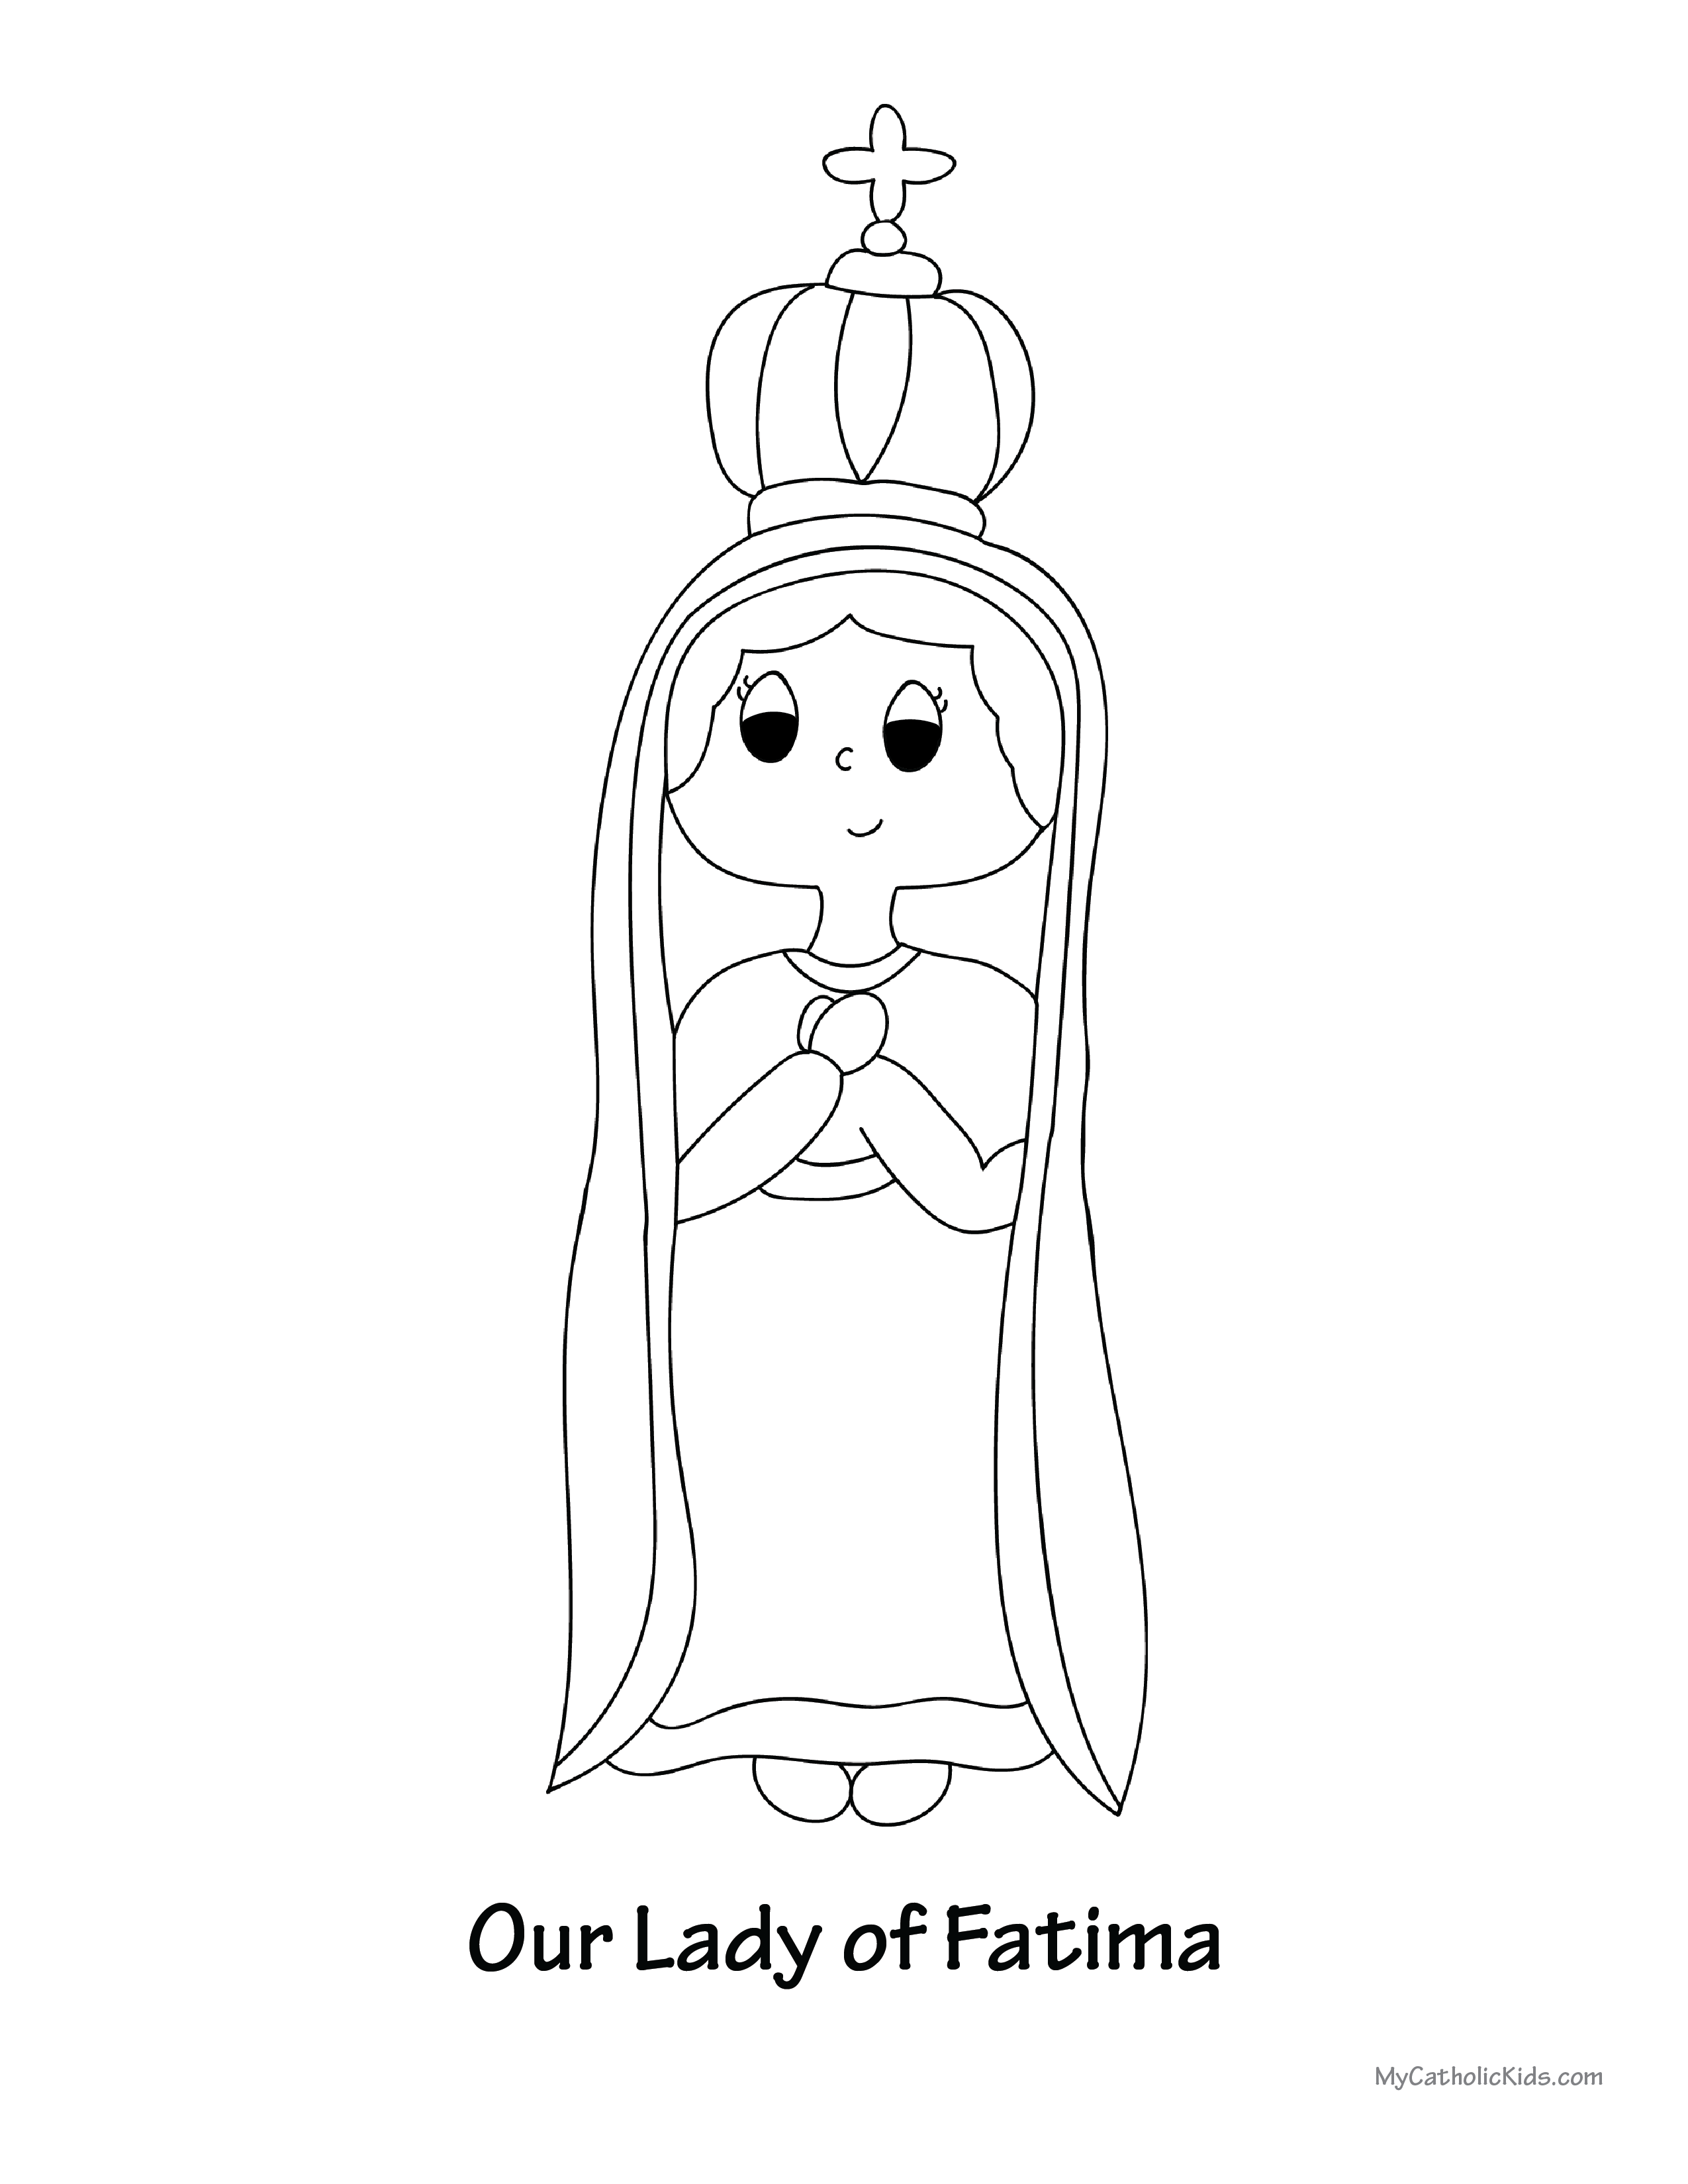 Our Lady of Fatima coloring sheet